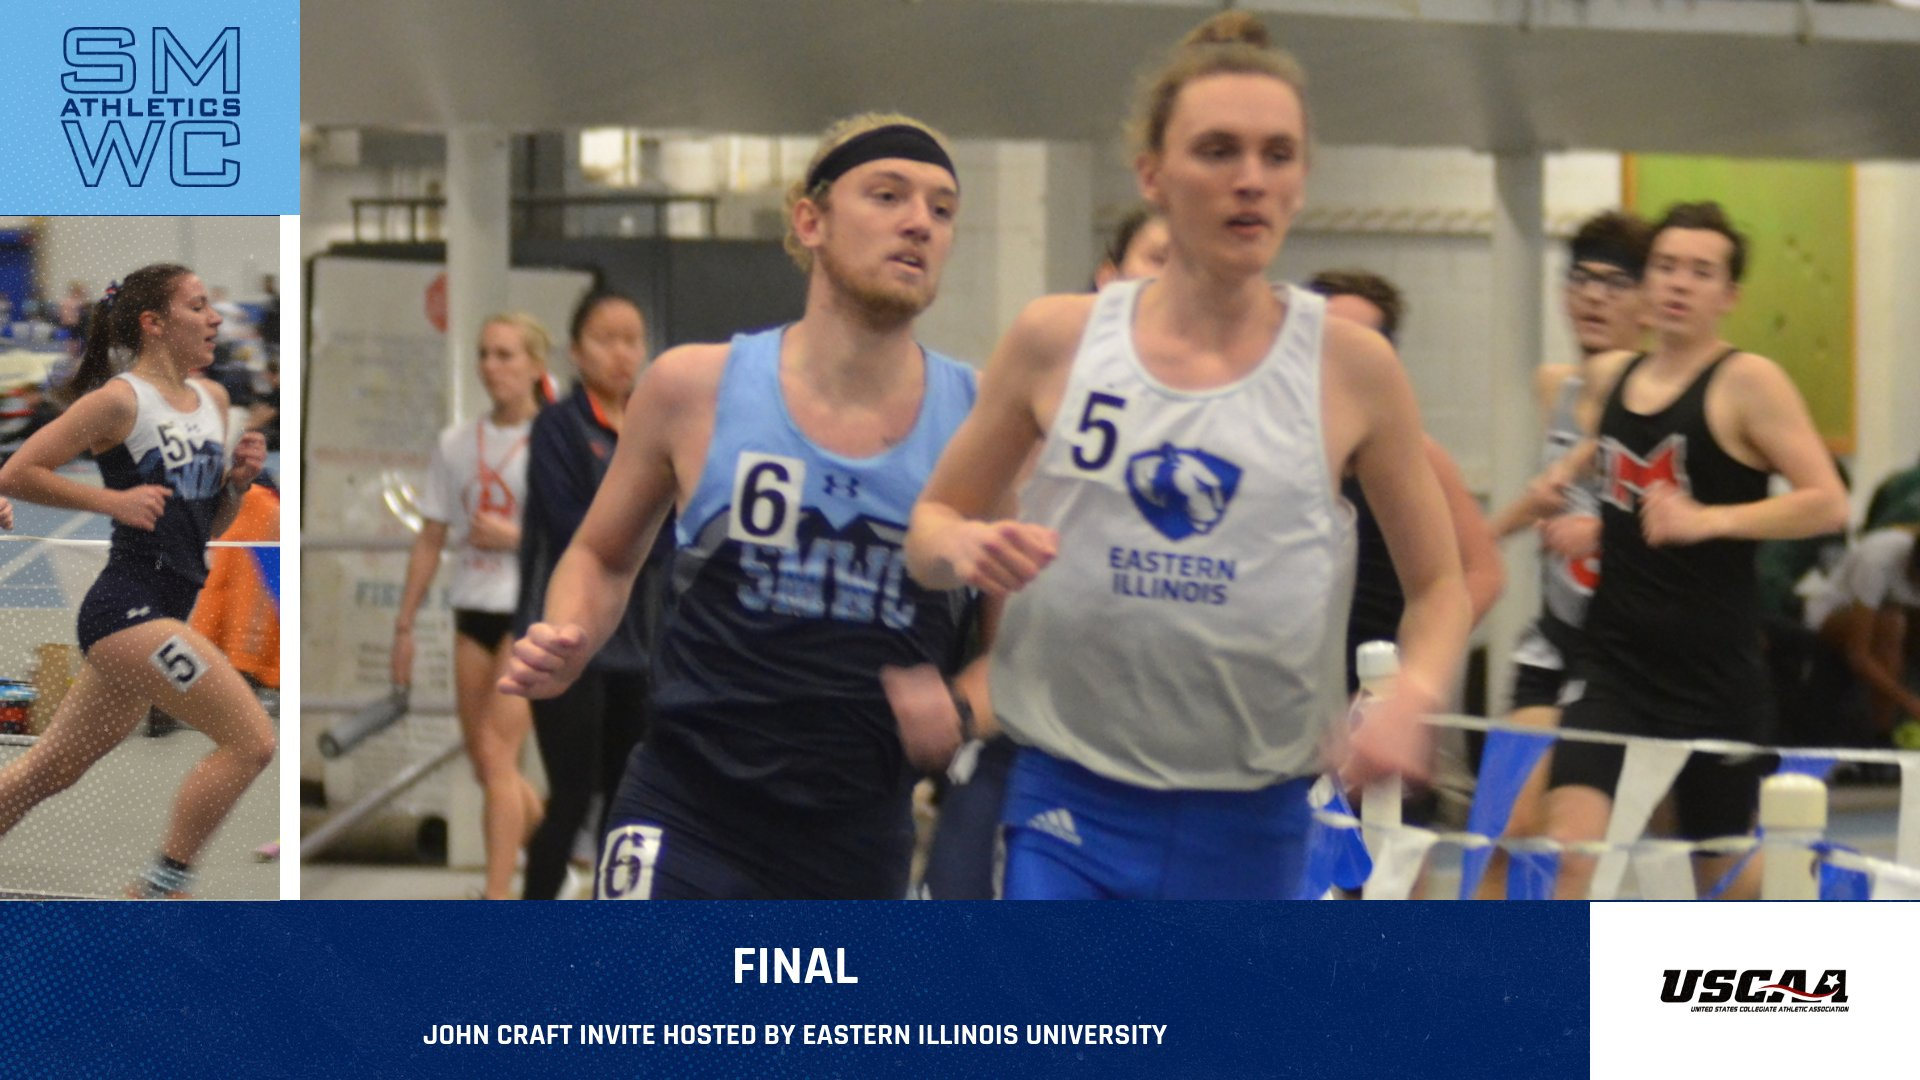 Women's Track and Field Places 10th Overall at EIU